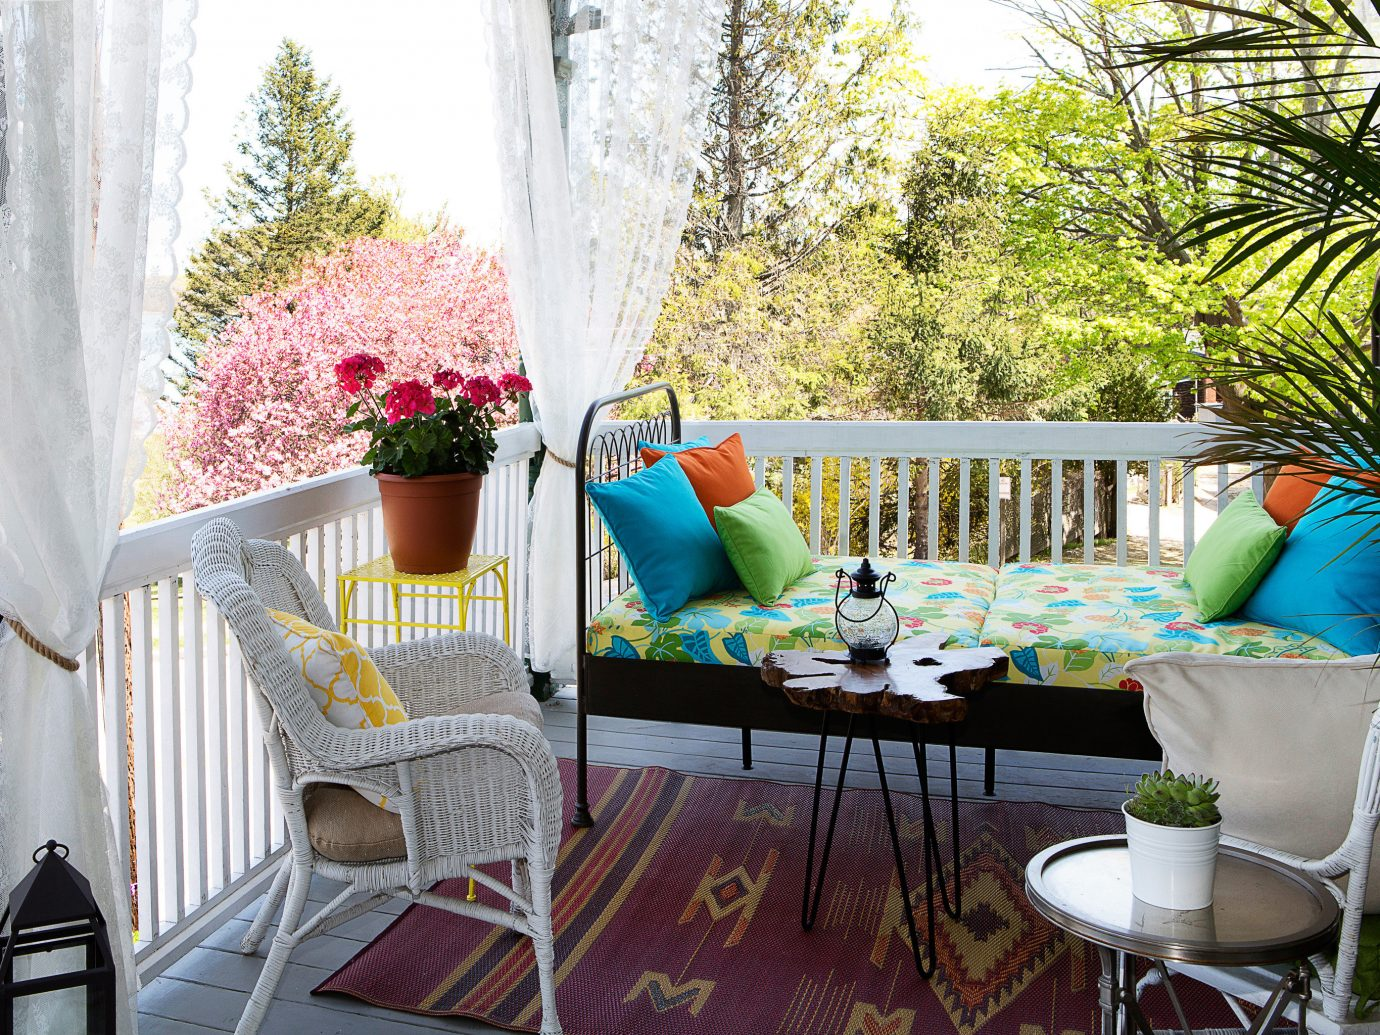 Trip Ideas Weekend Getaways tree room property porch home living room interior design cottage backyard estate Villa real estate outdoor structure Balcony plant decorated furniture